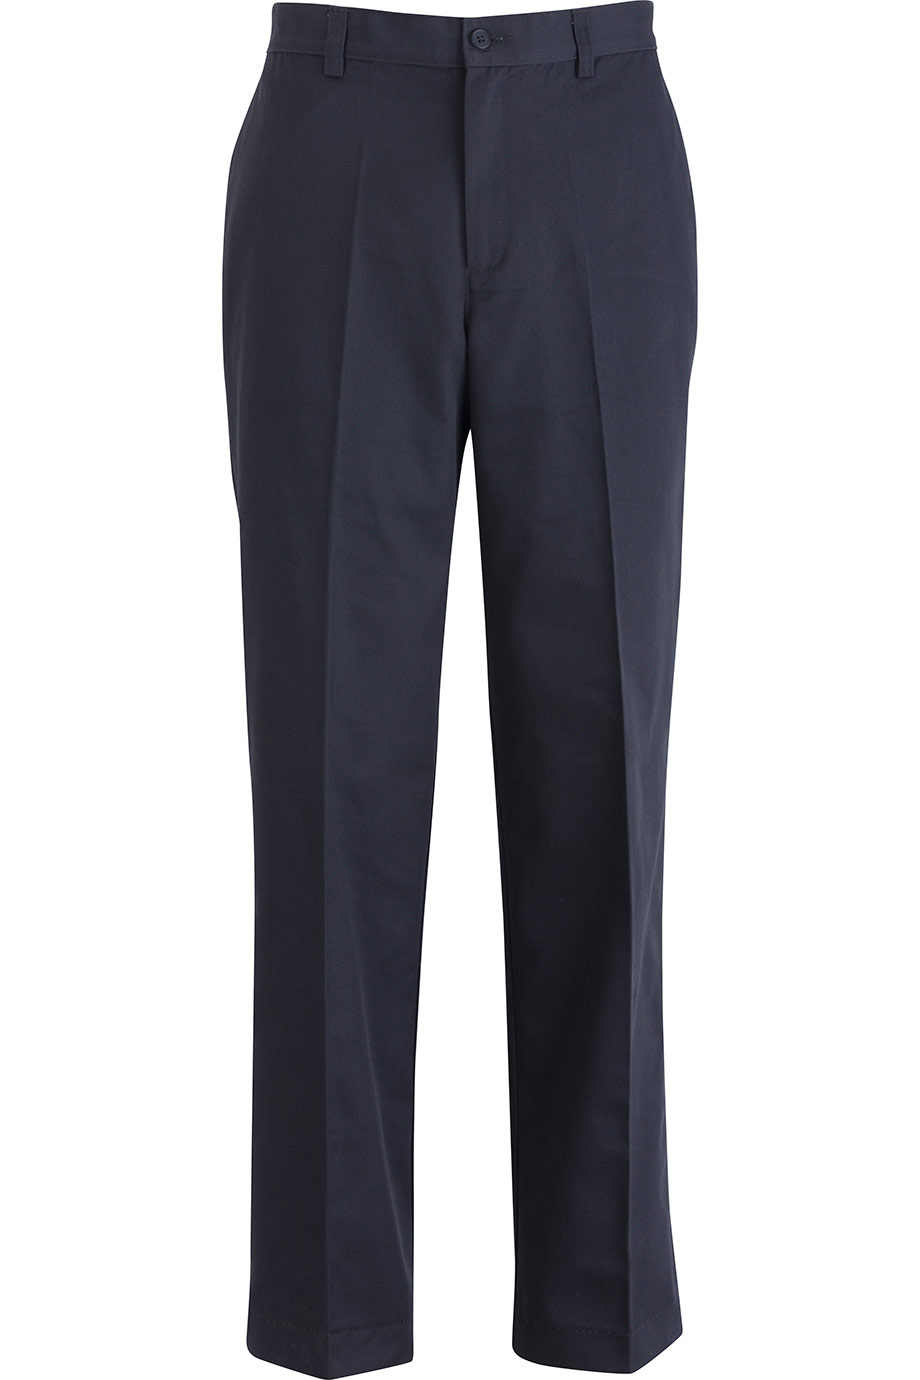 UTILITY CHINO FLAT FRONT PANT